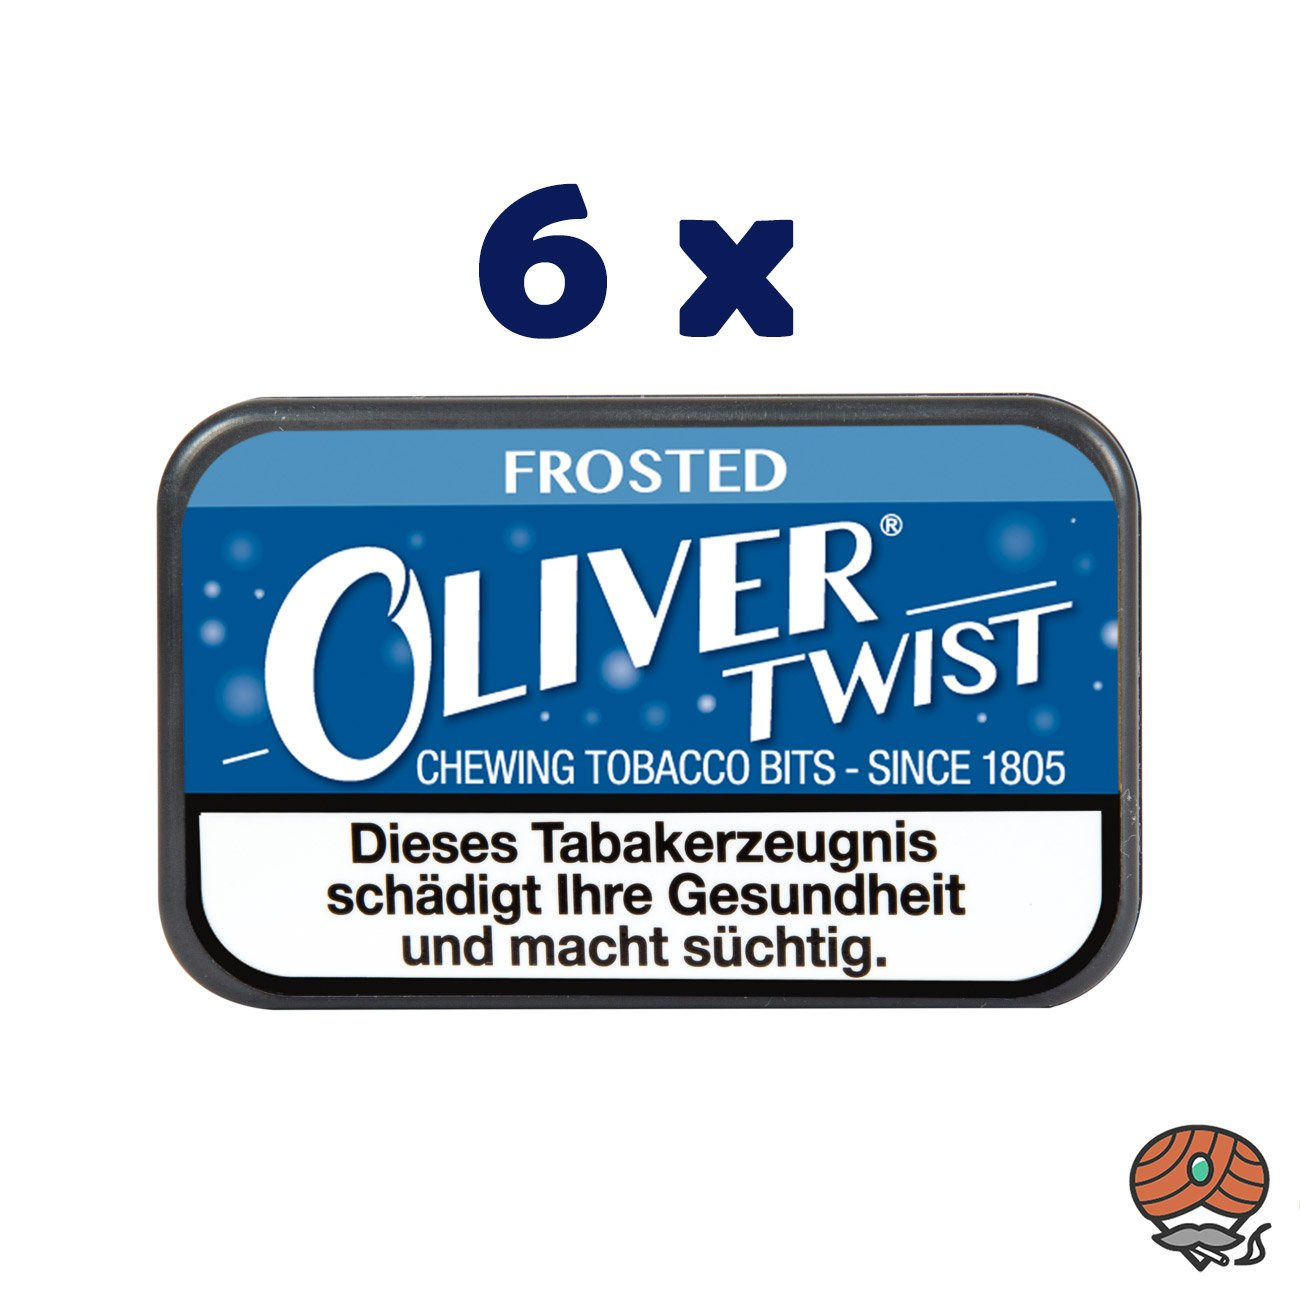 6 x Oliver Twist FROSTED Tabakpastillen, Kautabak, Chewing Bits